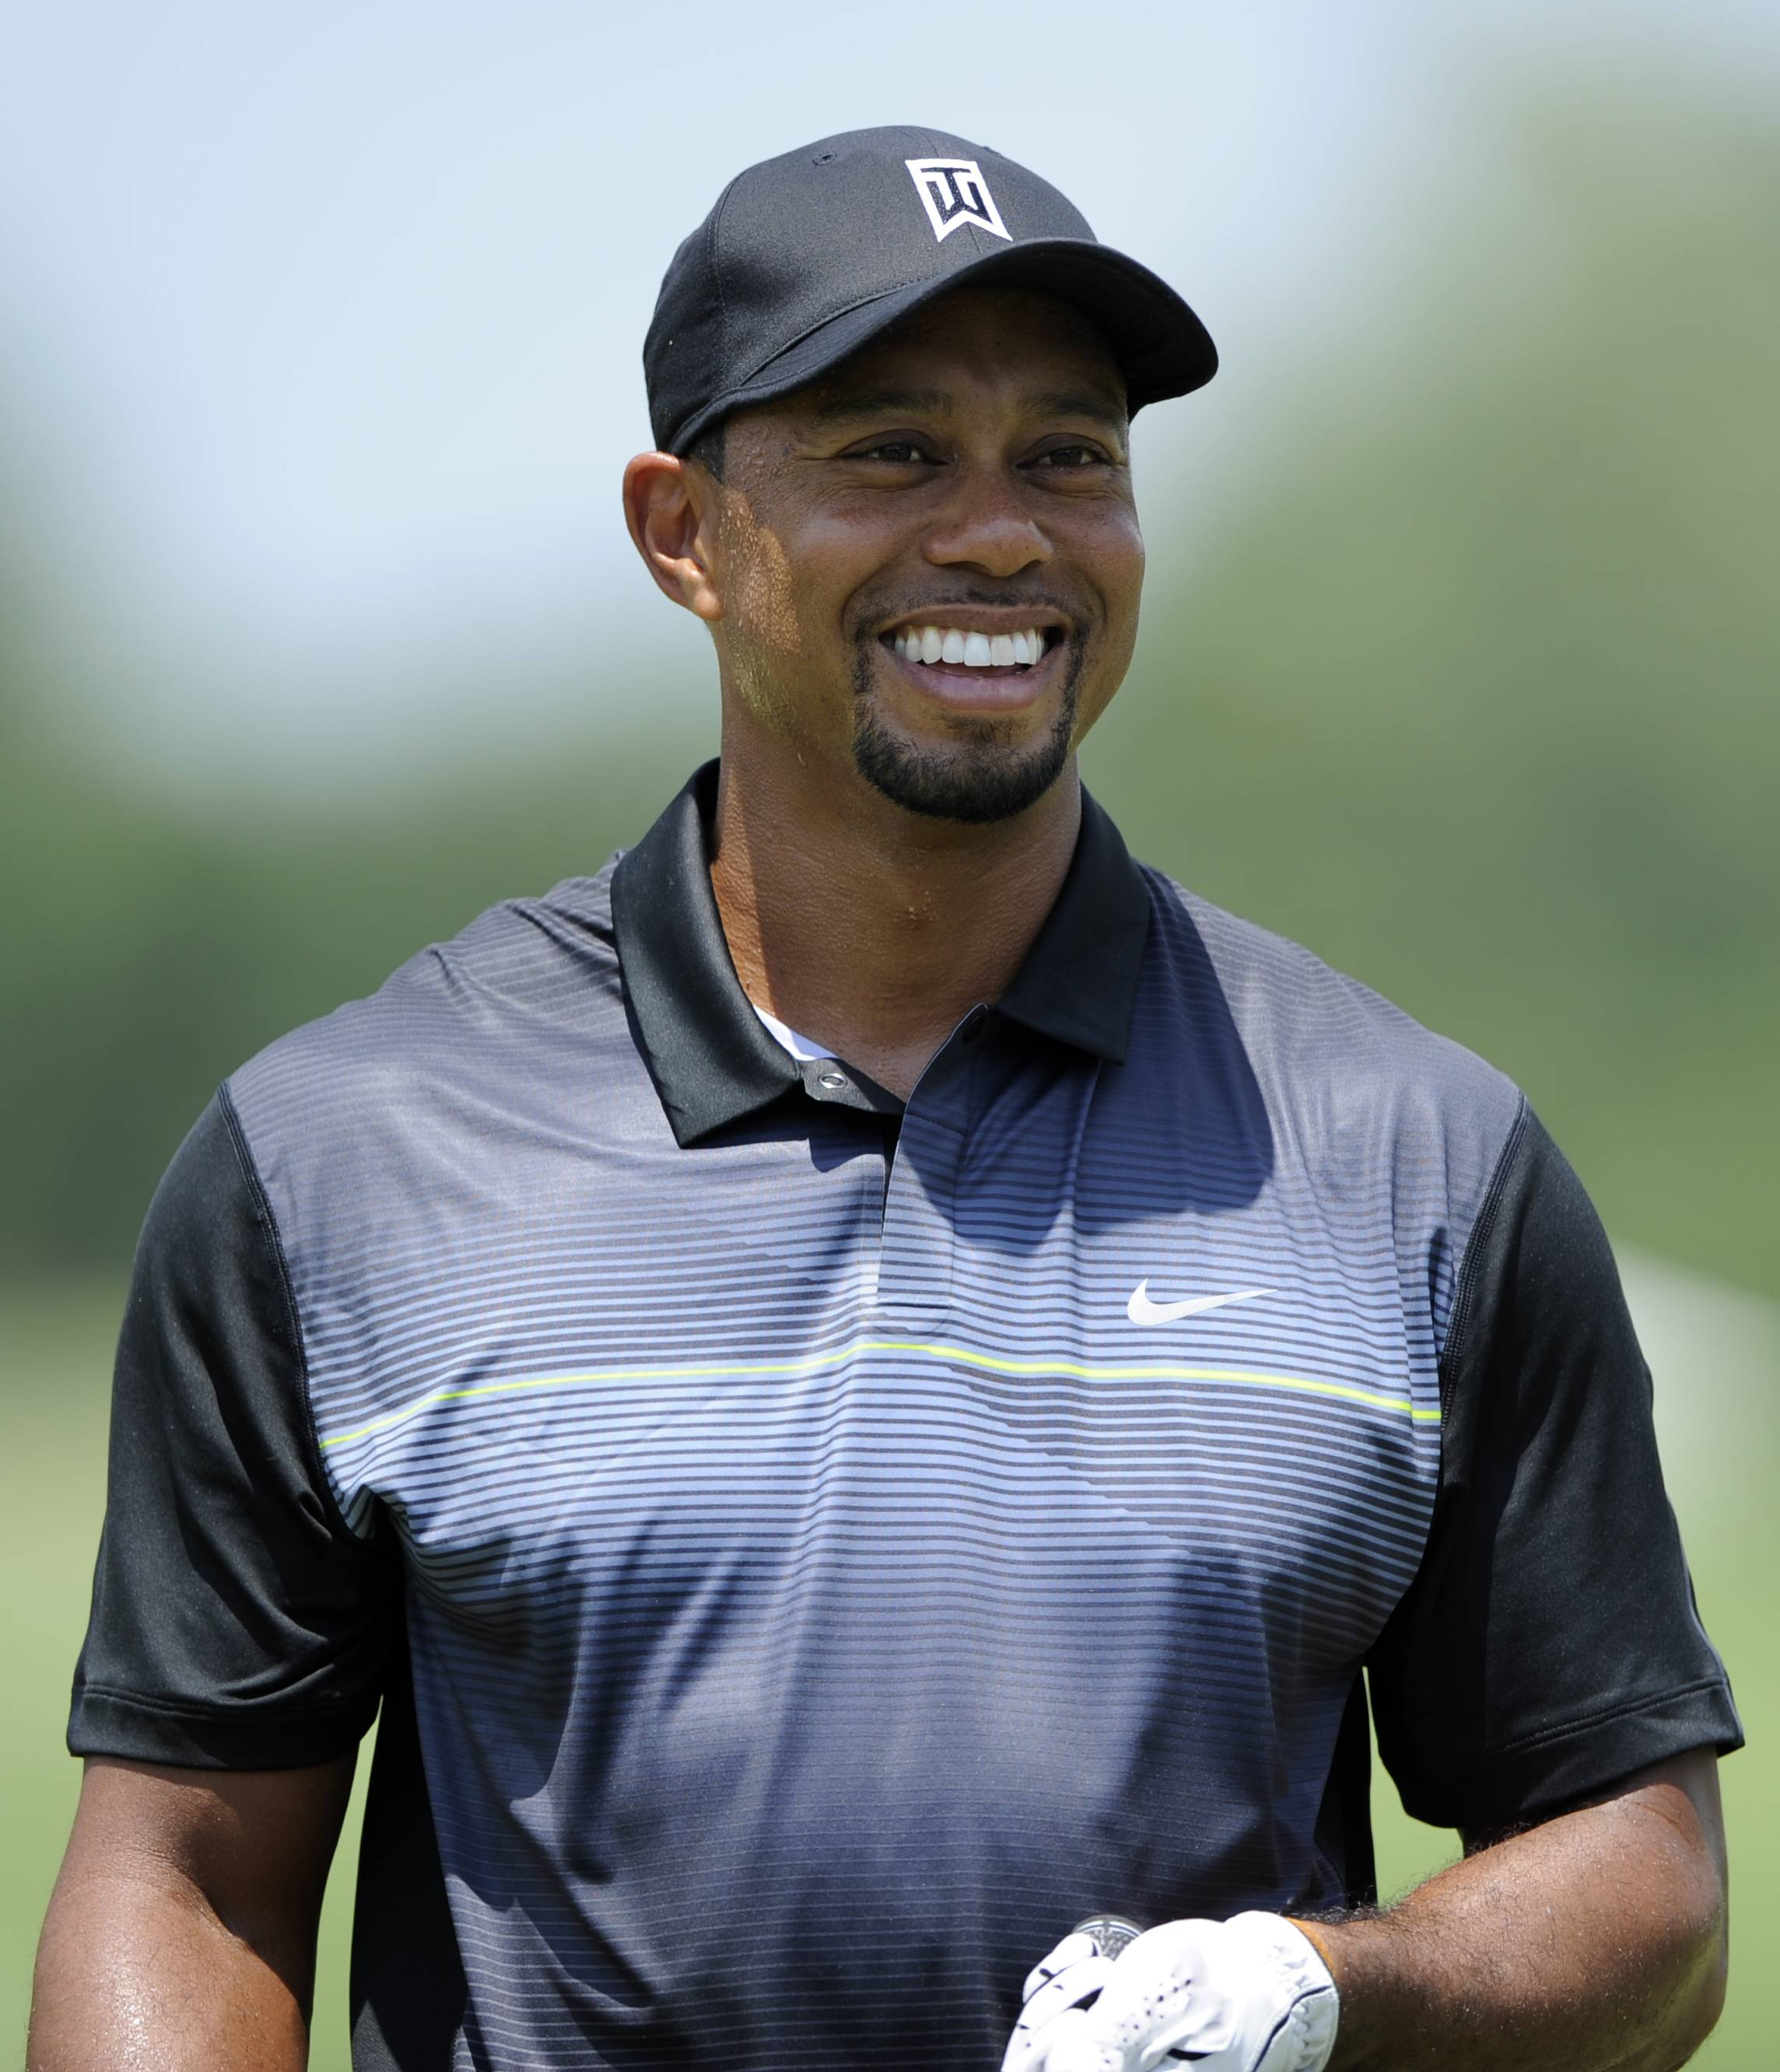 After a good practice round and more work at the driving ranger, Tiger Woods emerged with a smile as he prepared for the Quicken Loans National golf tournament.